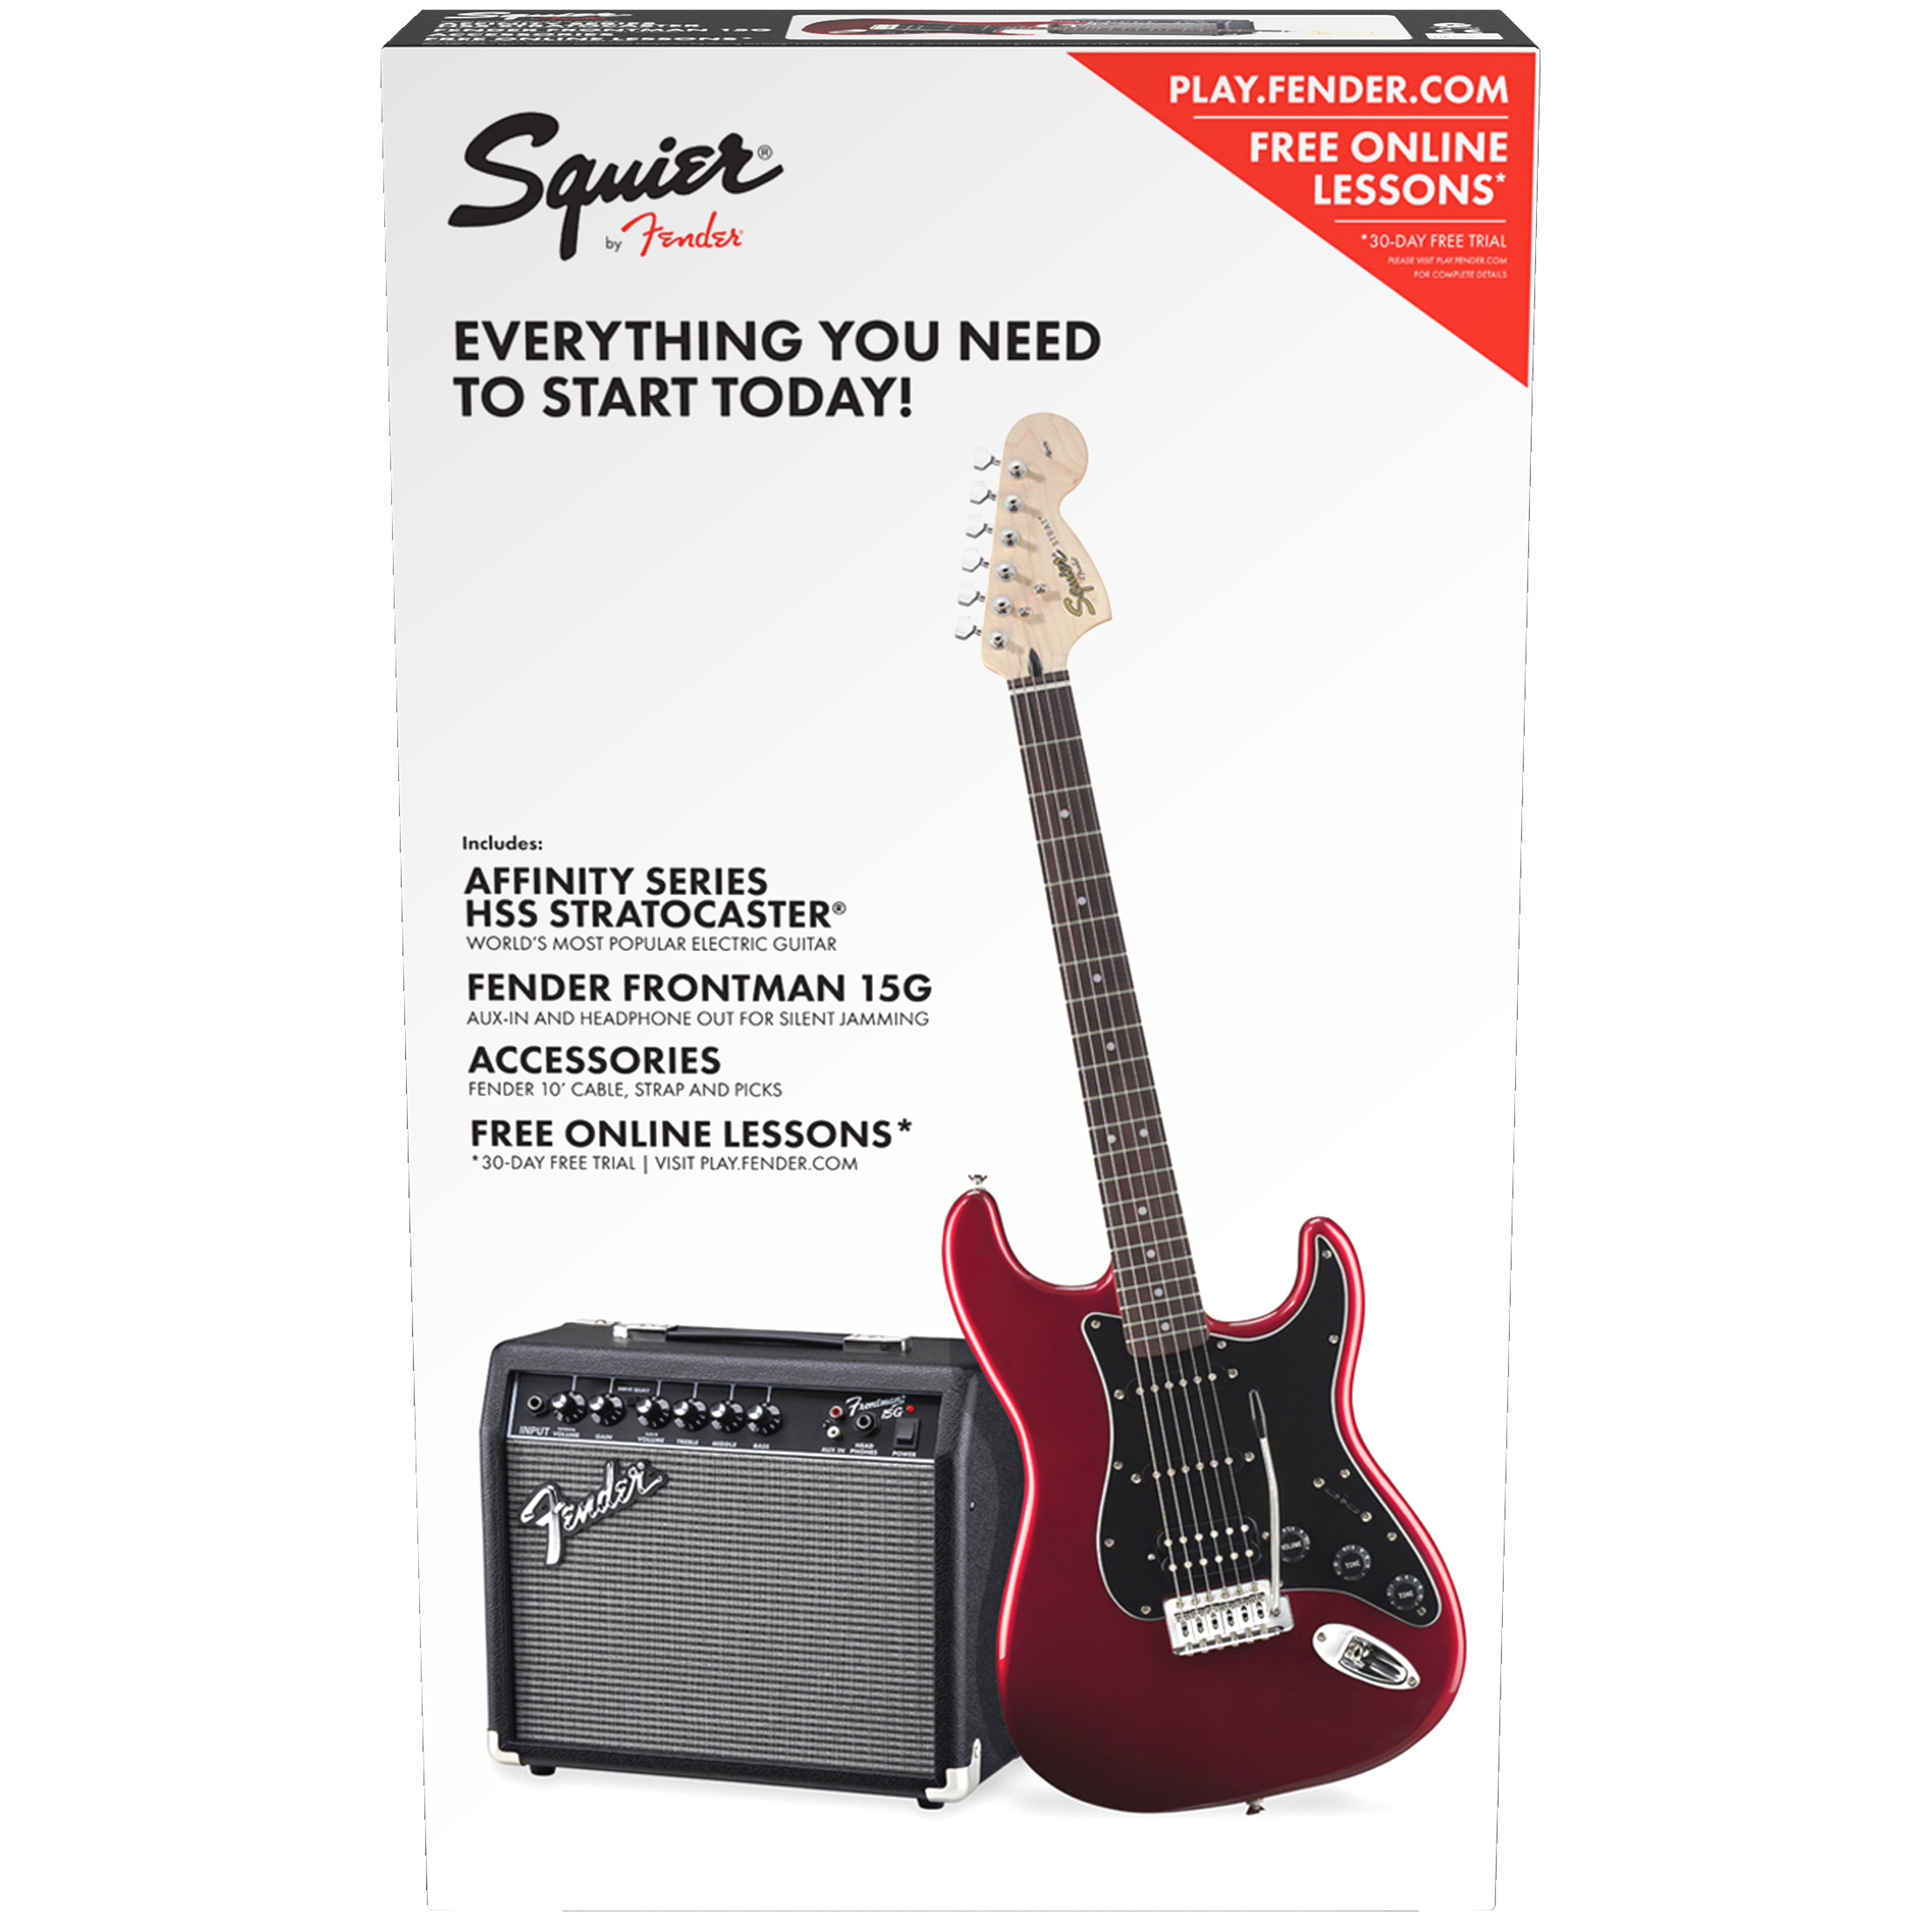 Squier Affinity Series Stratocaster HSS with Fender Frontman 15G Amp